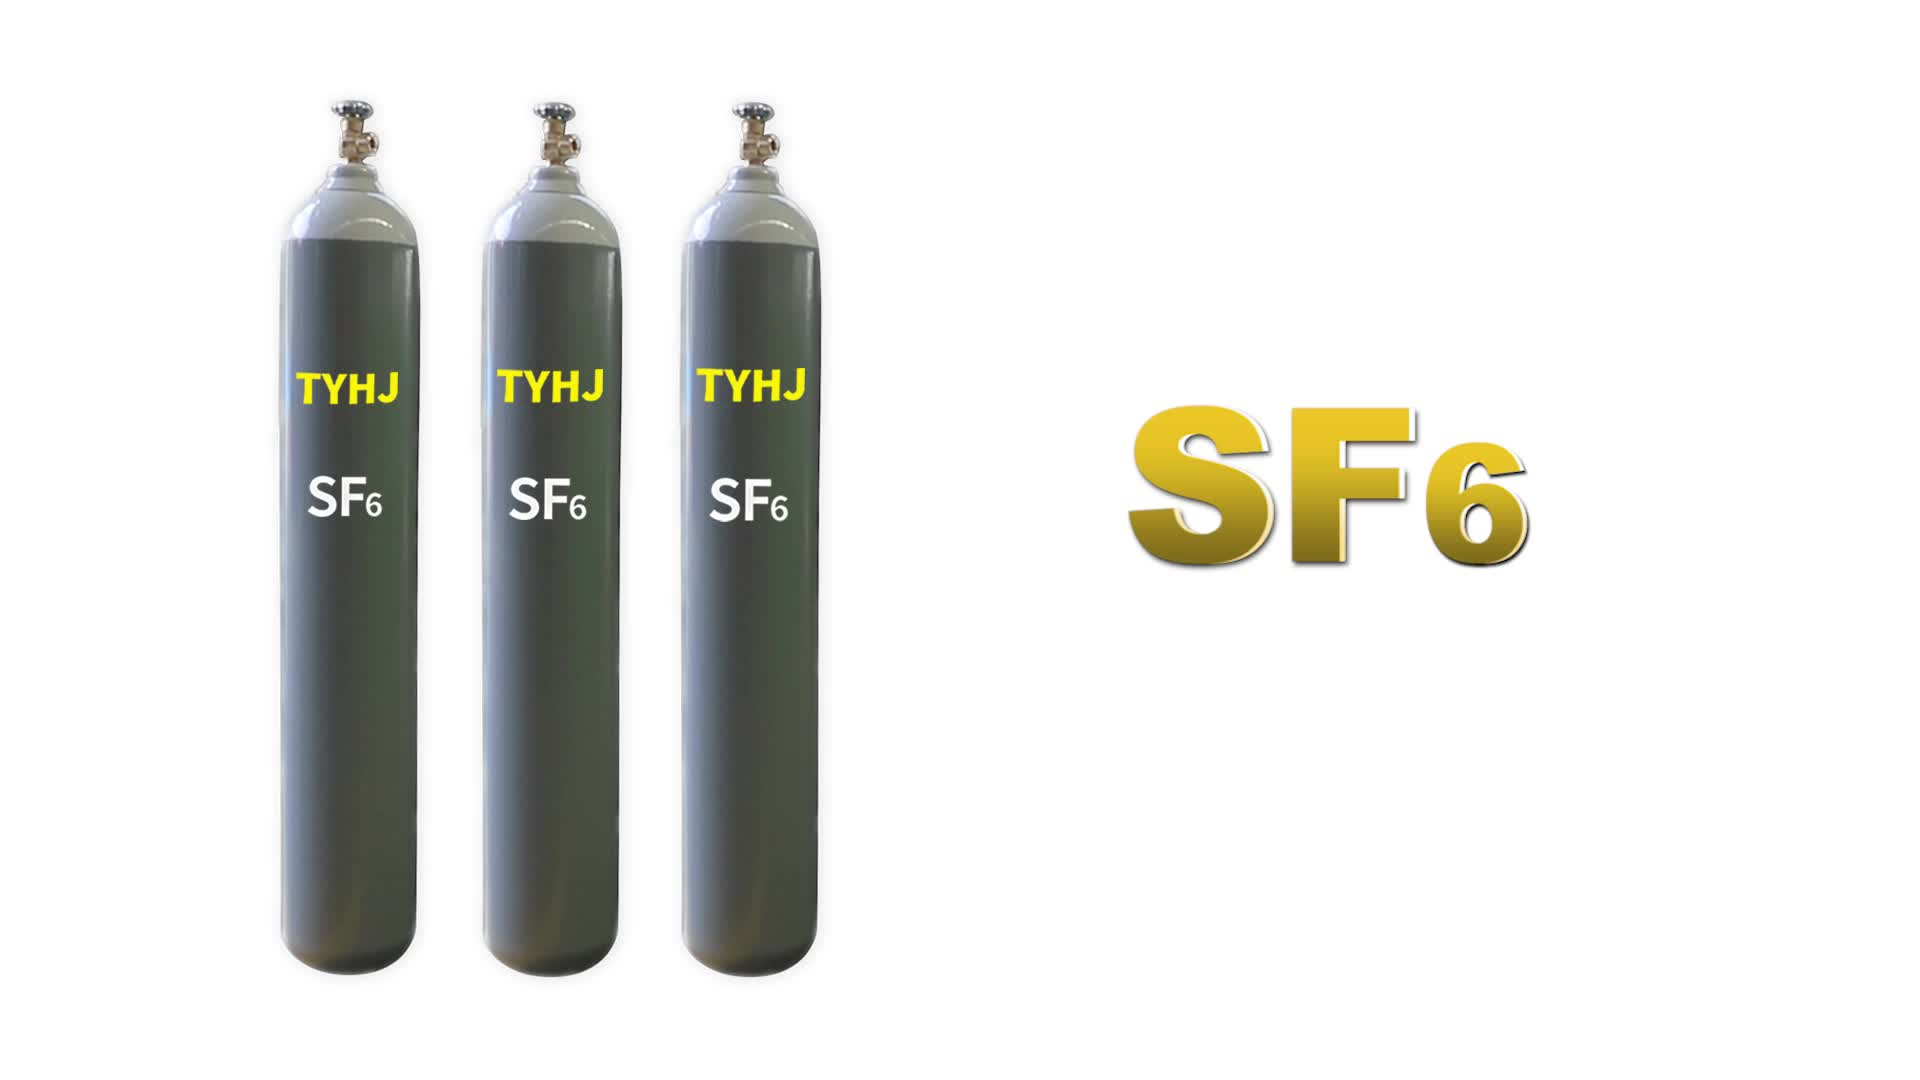 99.995% 50kg sf6 gas cylinder price buy sf6 gas manufacturers price sulfur hexafluoride for sale